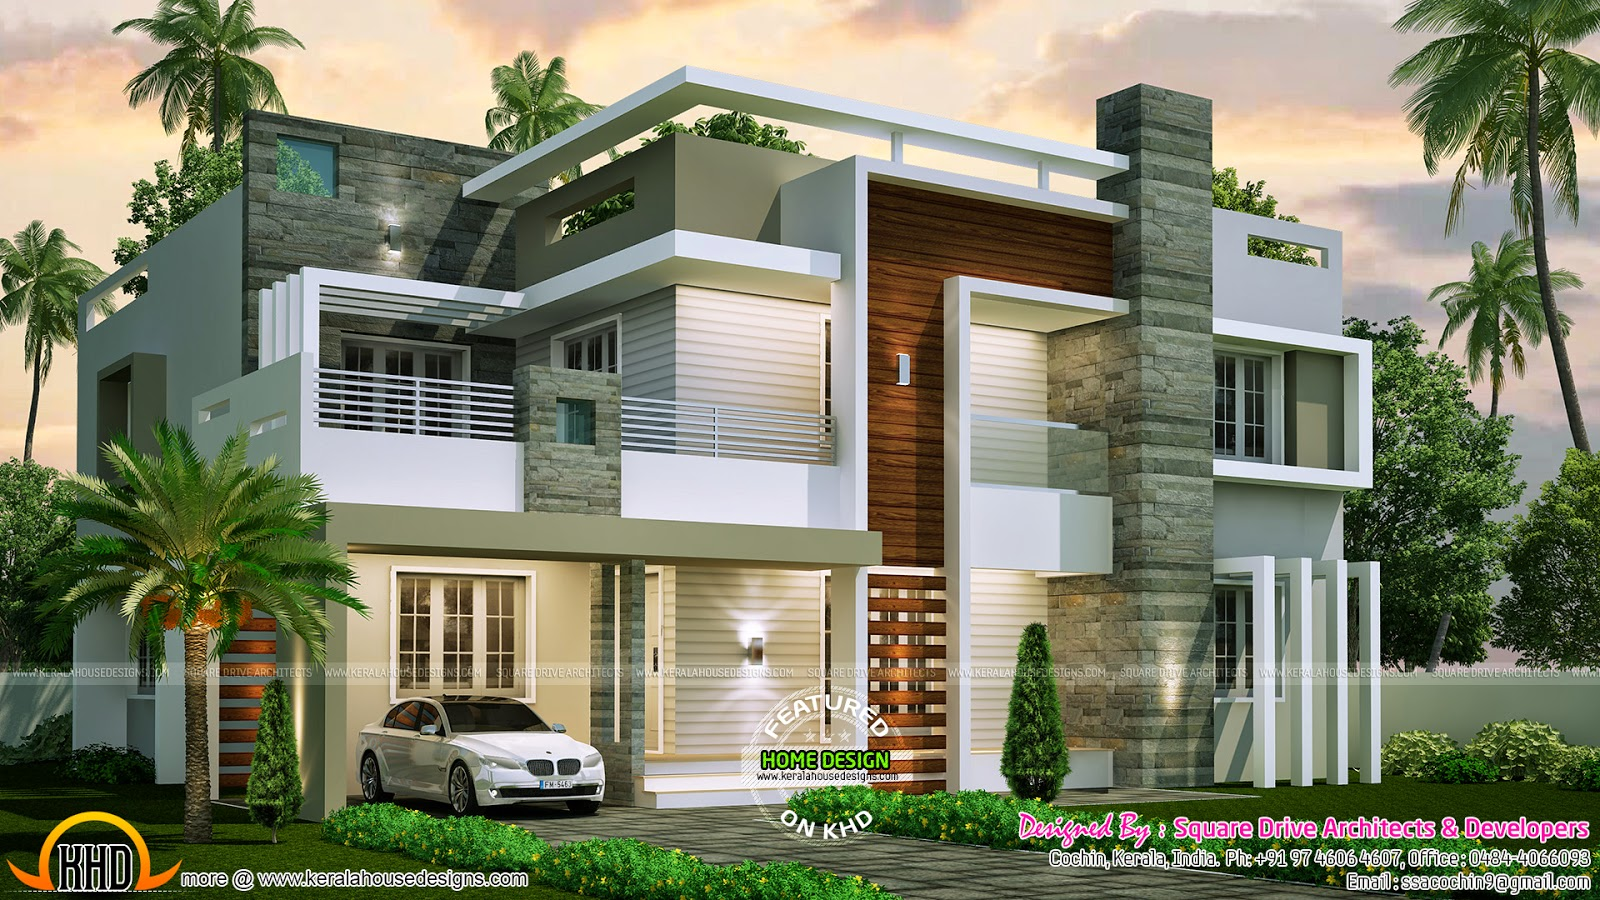 4 bedroom contemporary home design kerala home design On modern house plane